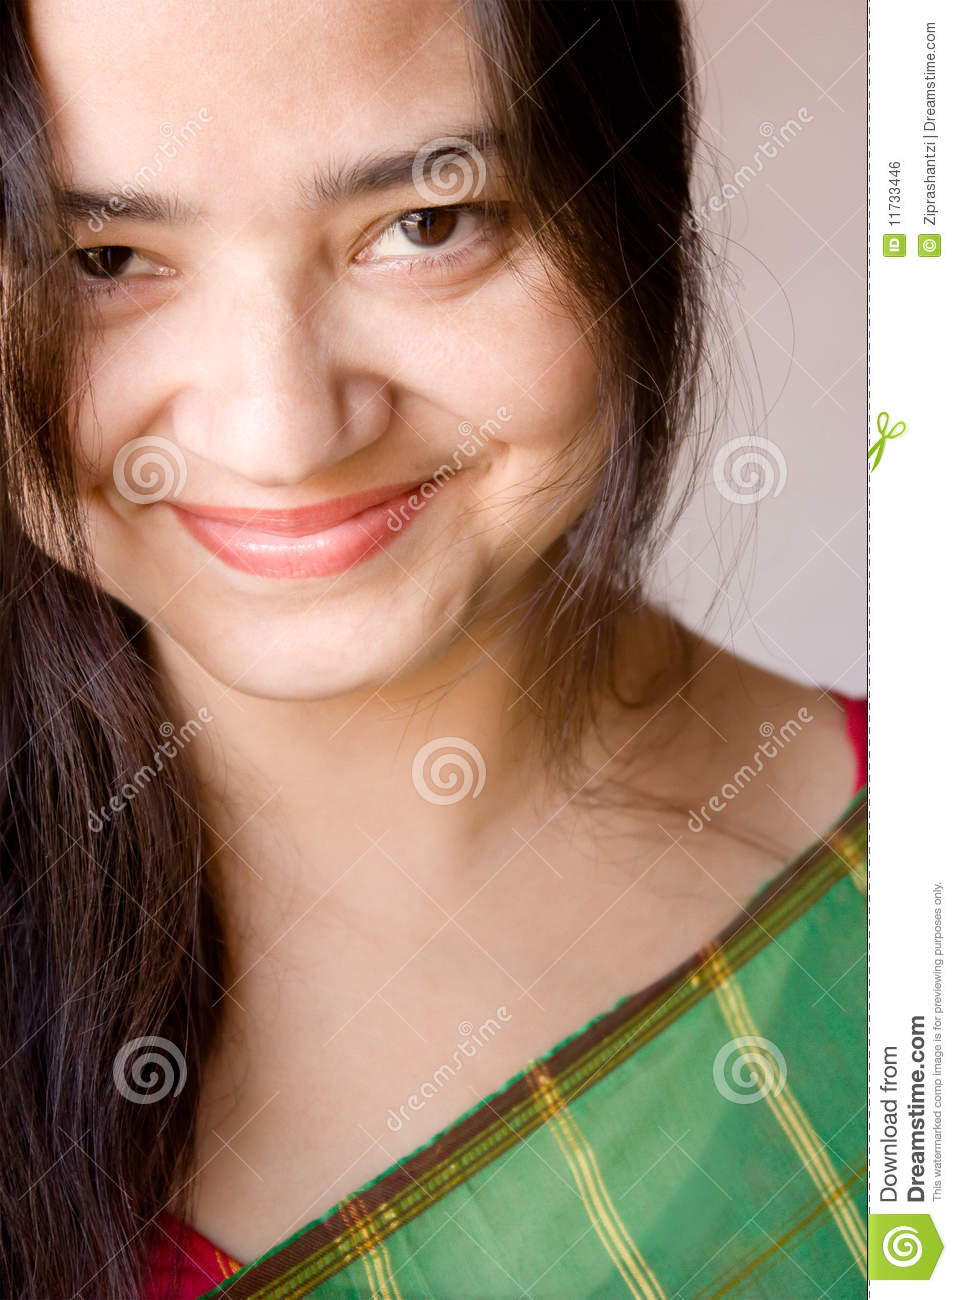 Shy Smile Of Beautiful Indian Women Royalty Free Stock Image   Image